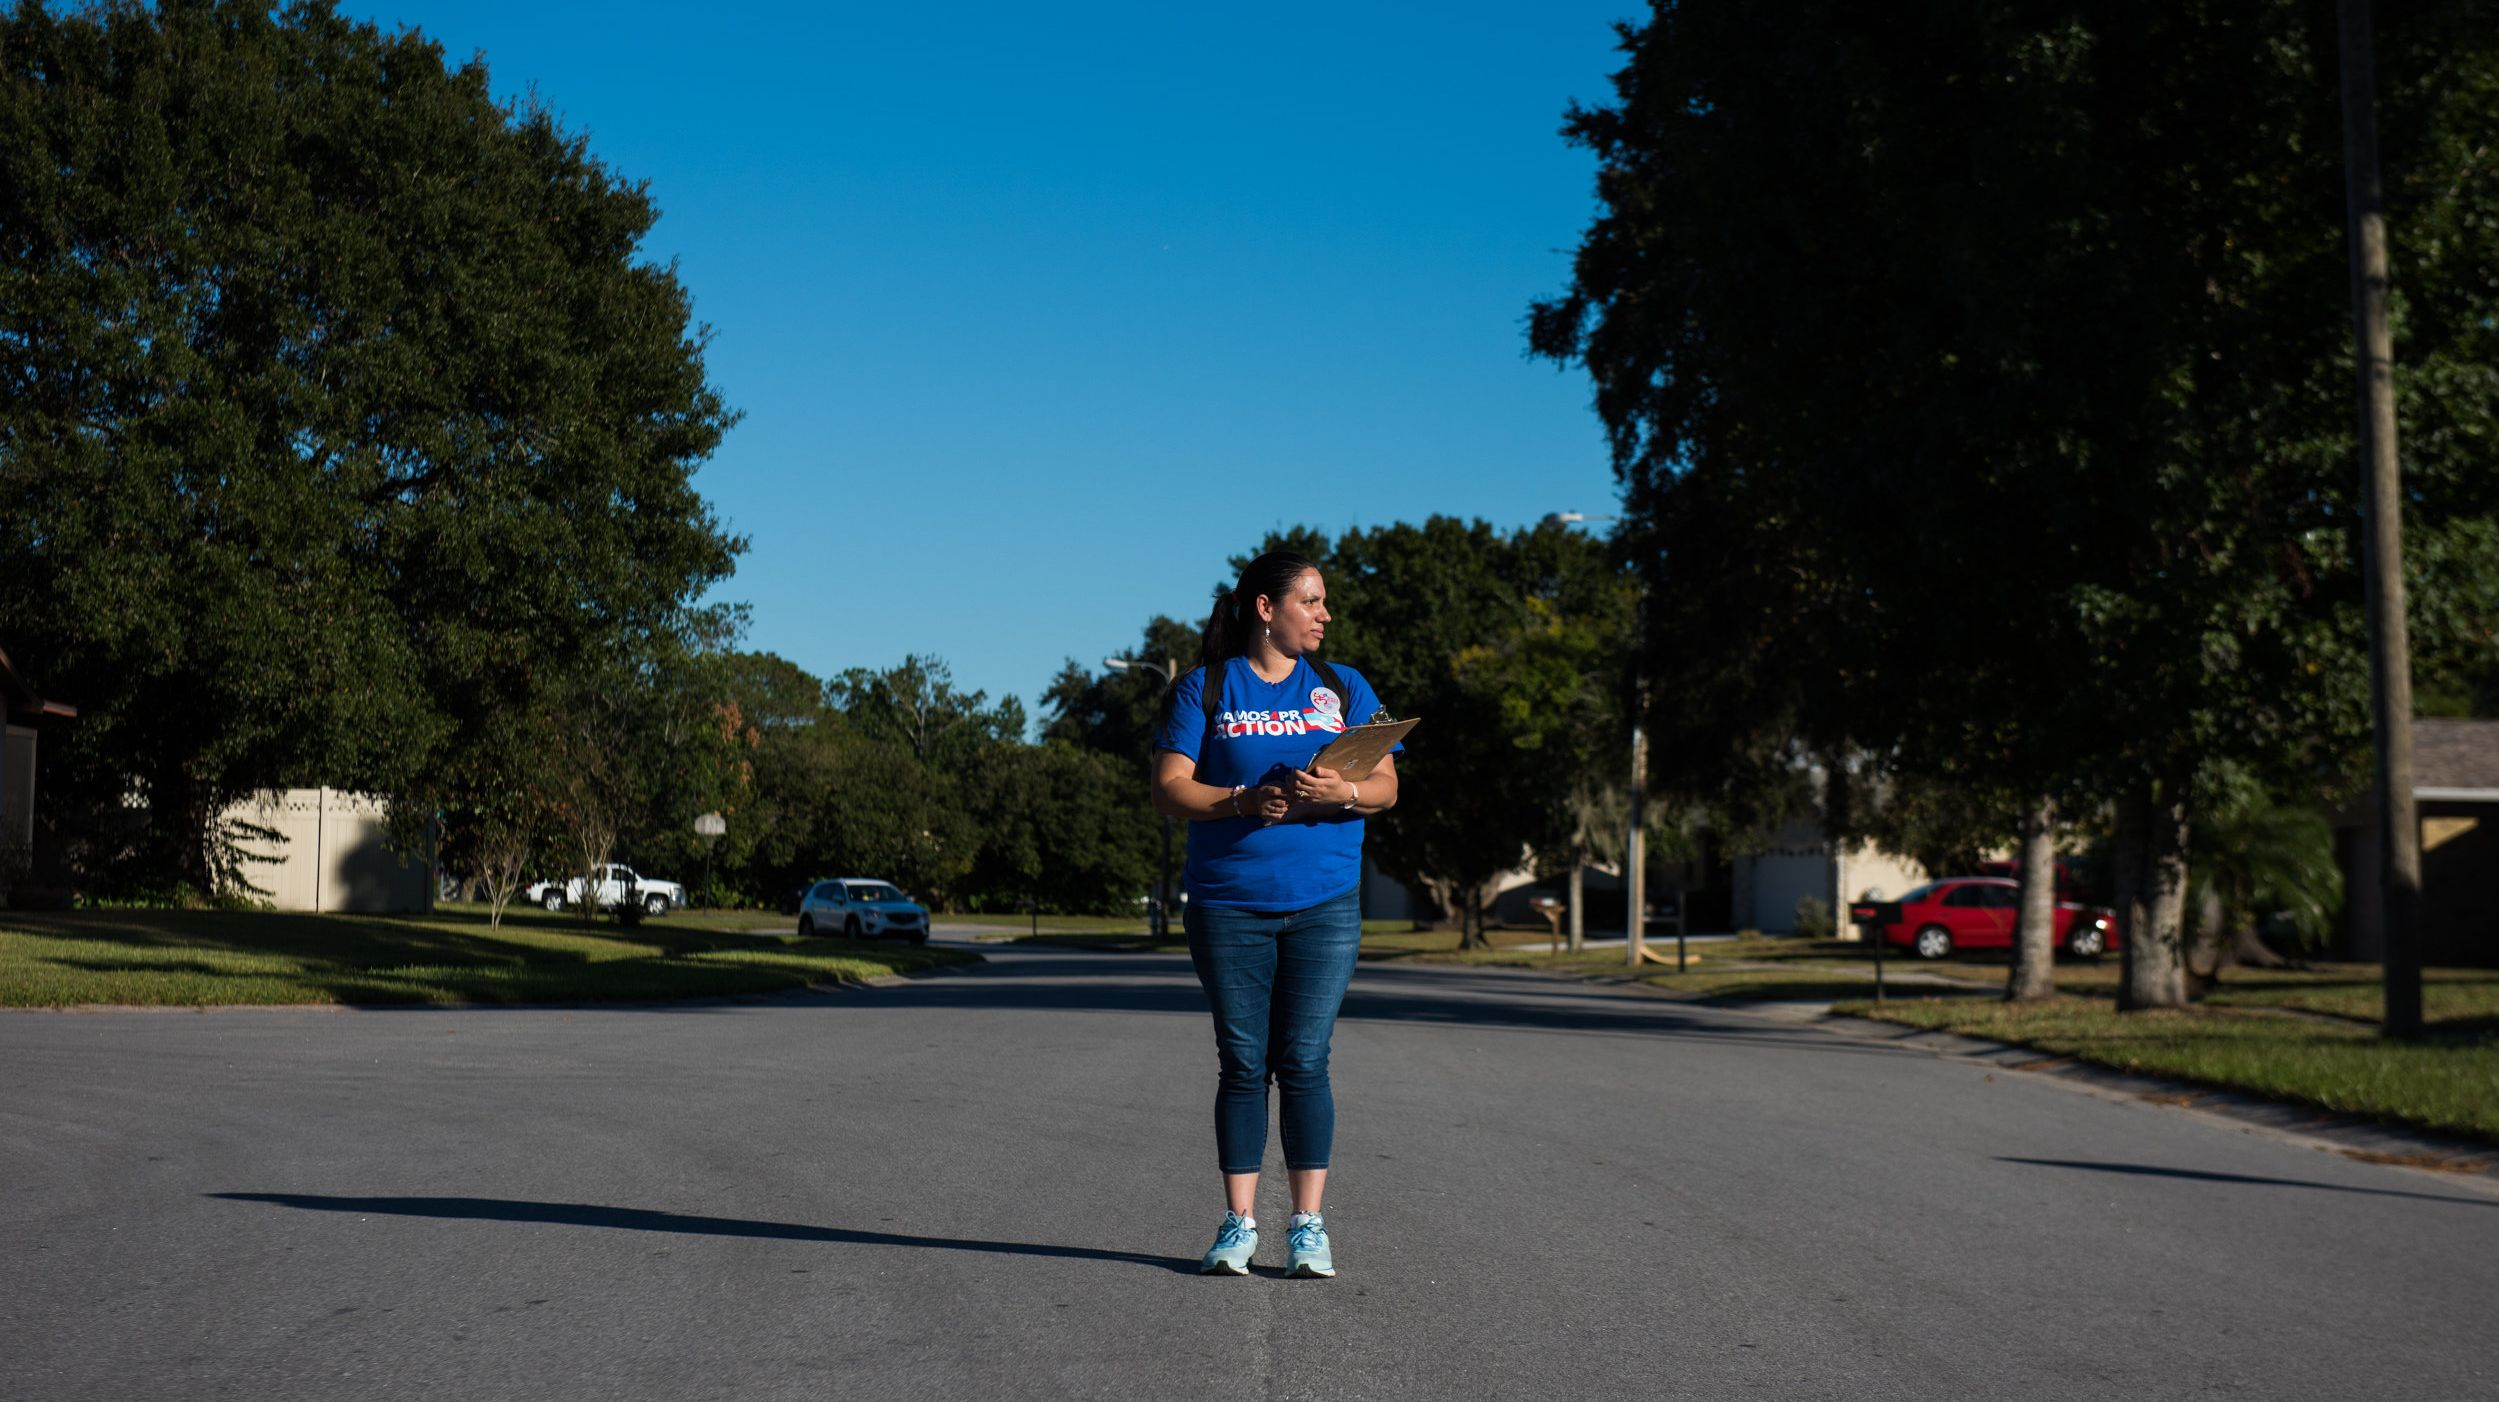 Arleen Sevilla poses for a photo while canvassing in the Chickasaw Woods subdivision in Orlando, Florida, on Oct. 30, 2018.